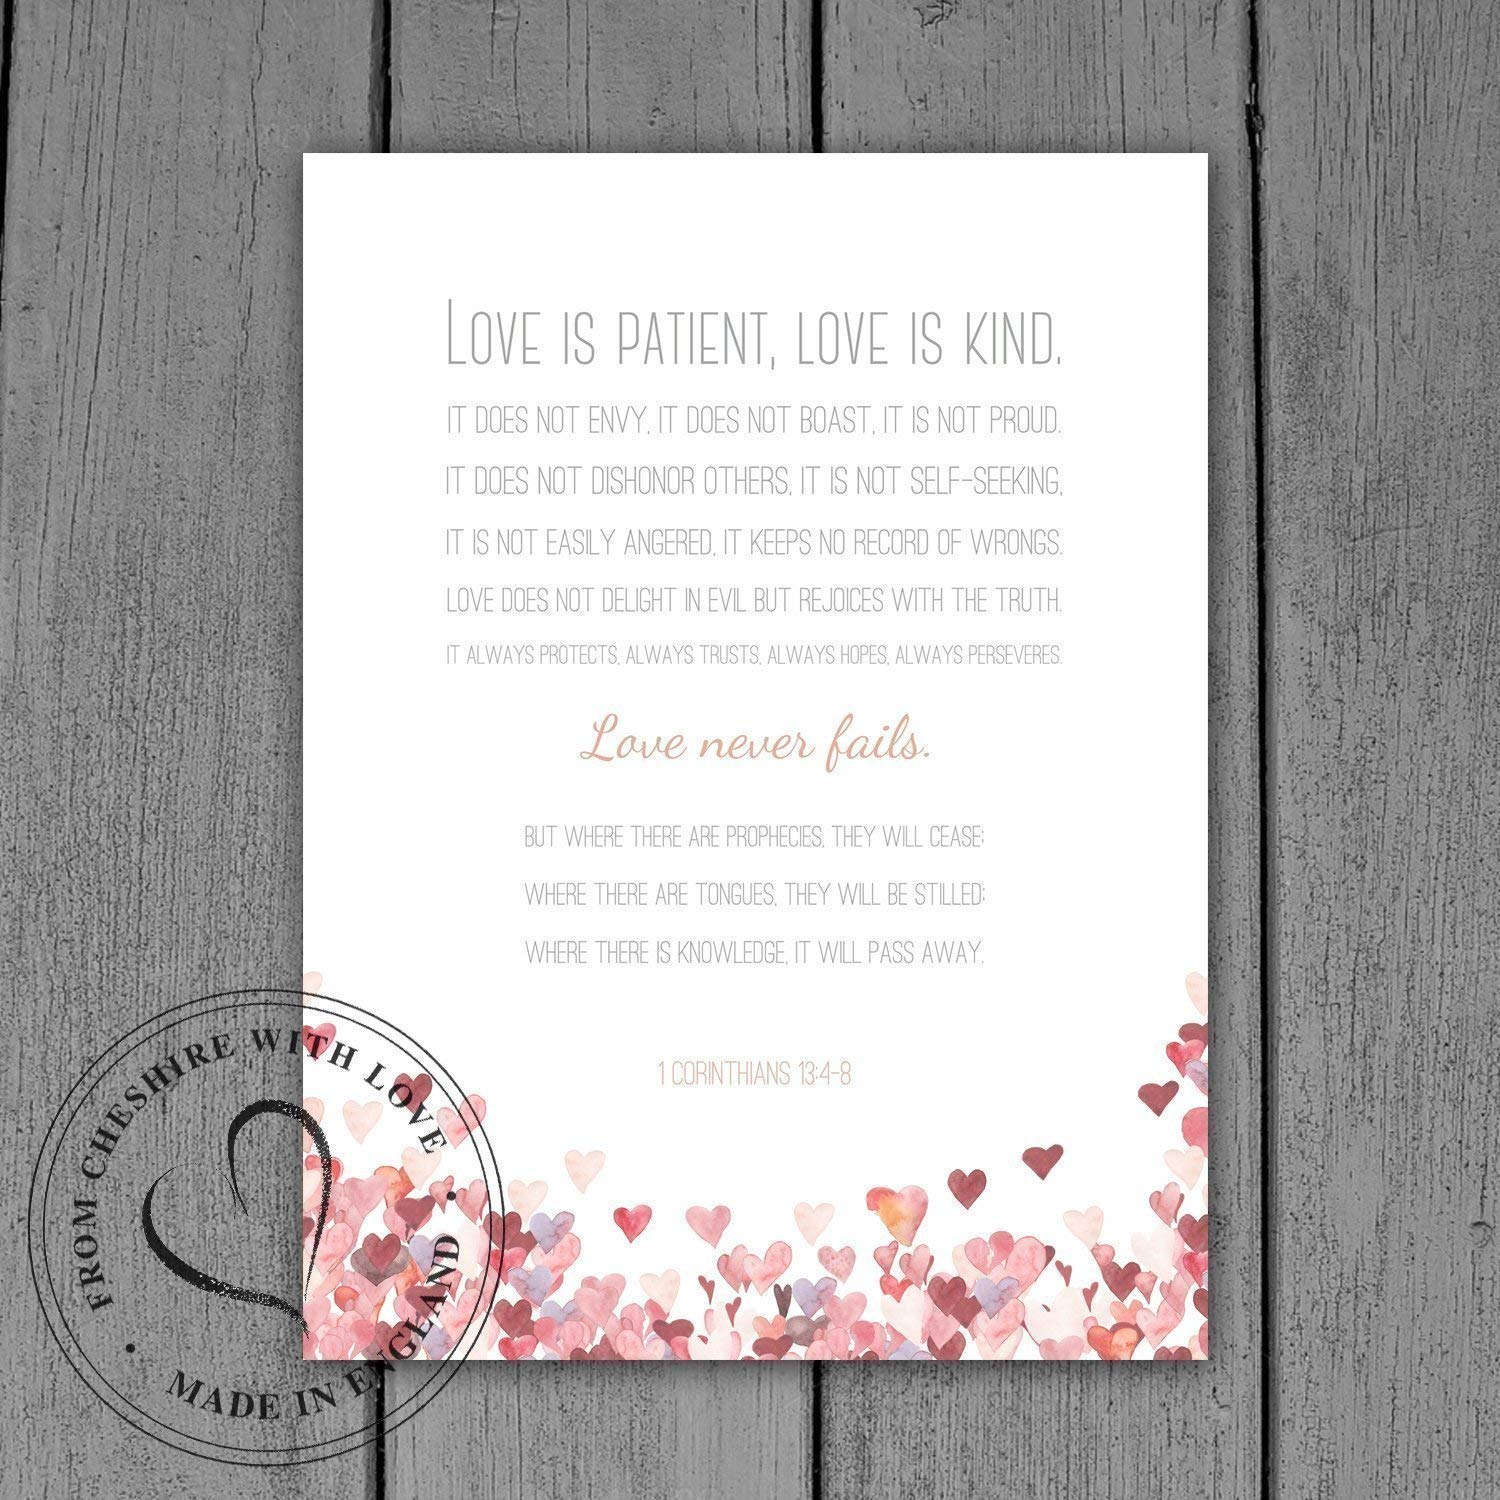 Amazon.com: 1 CORINTHIANS 13:4-8 Bible Verse PRINT 'Love Is Patient, Love Is Kind Love Never Fails.' Makes A Perfect Wedding/Anniversary Gift.